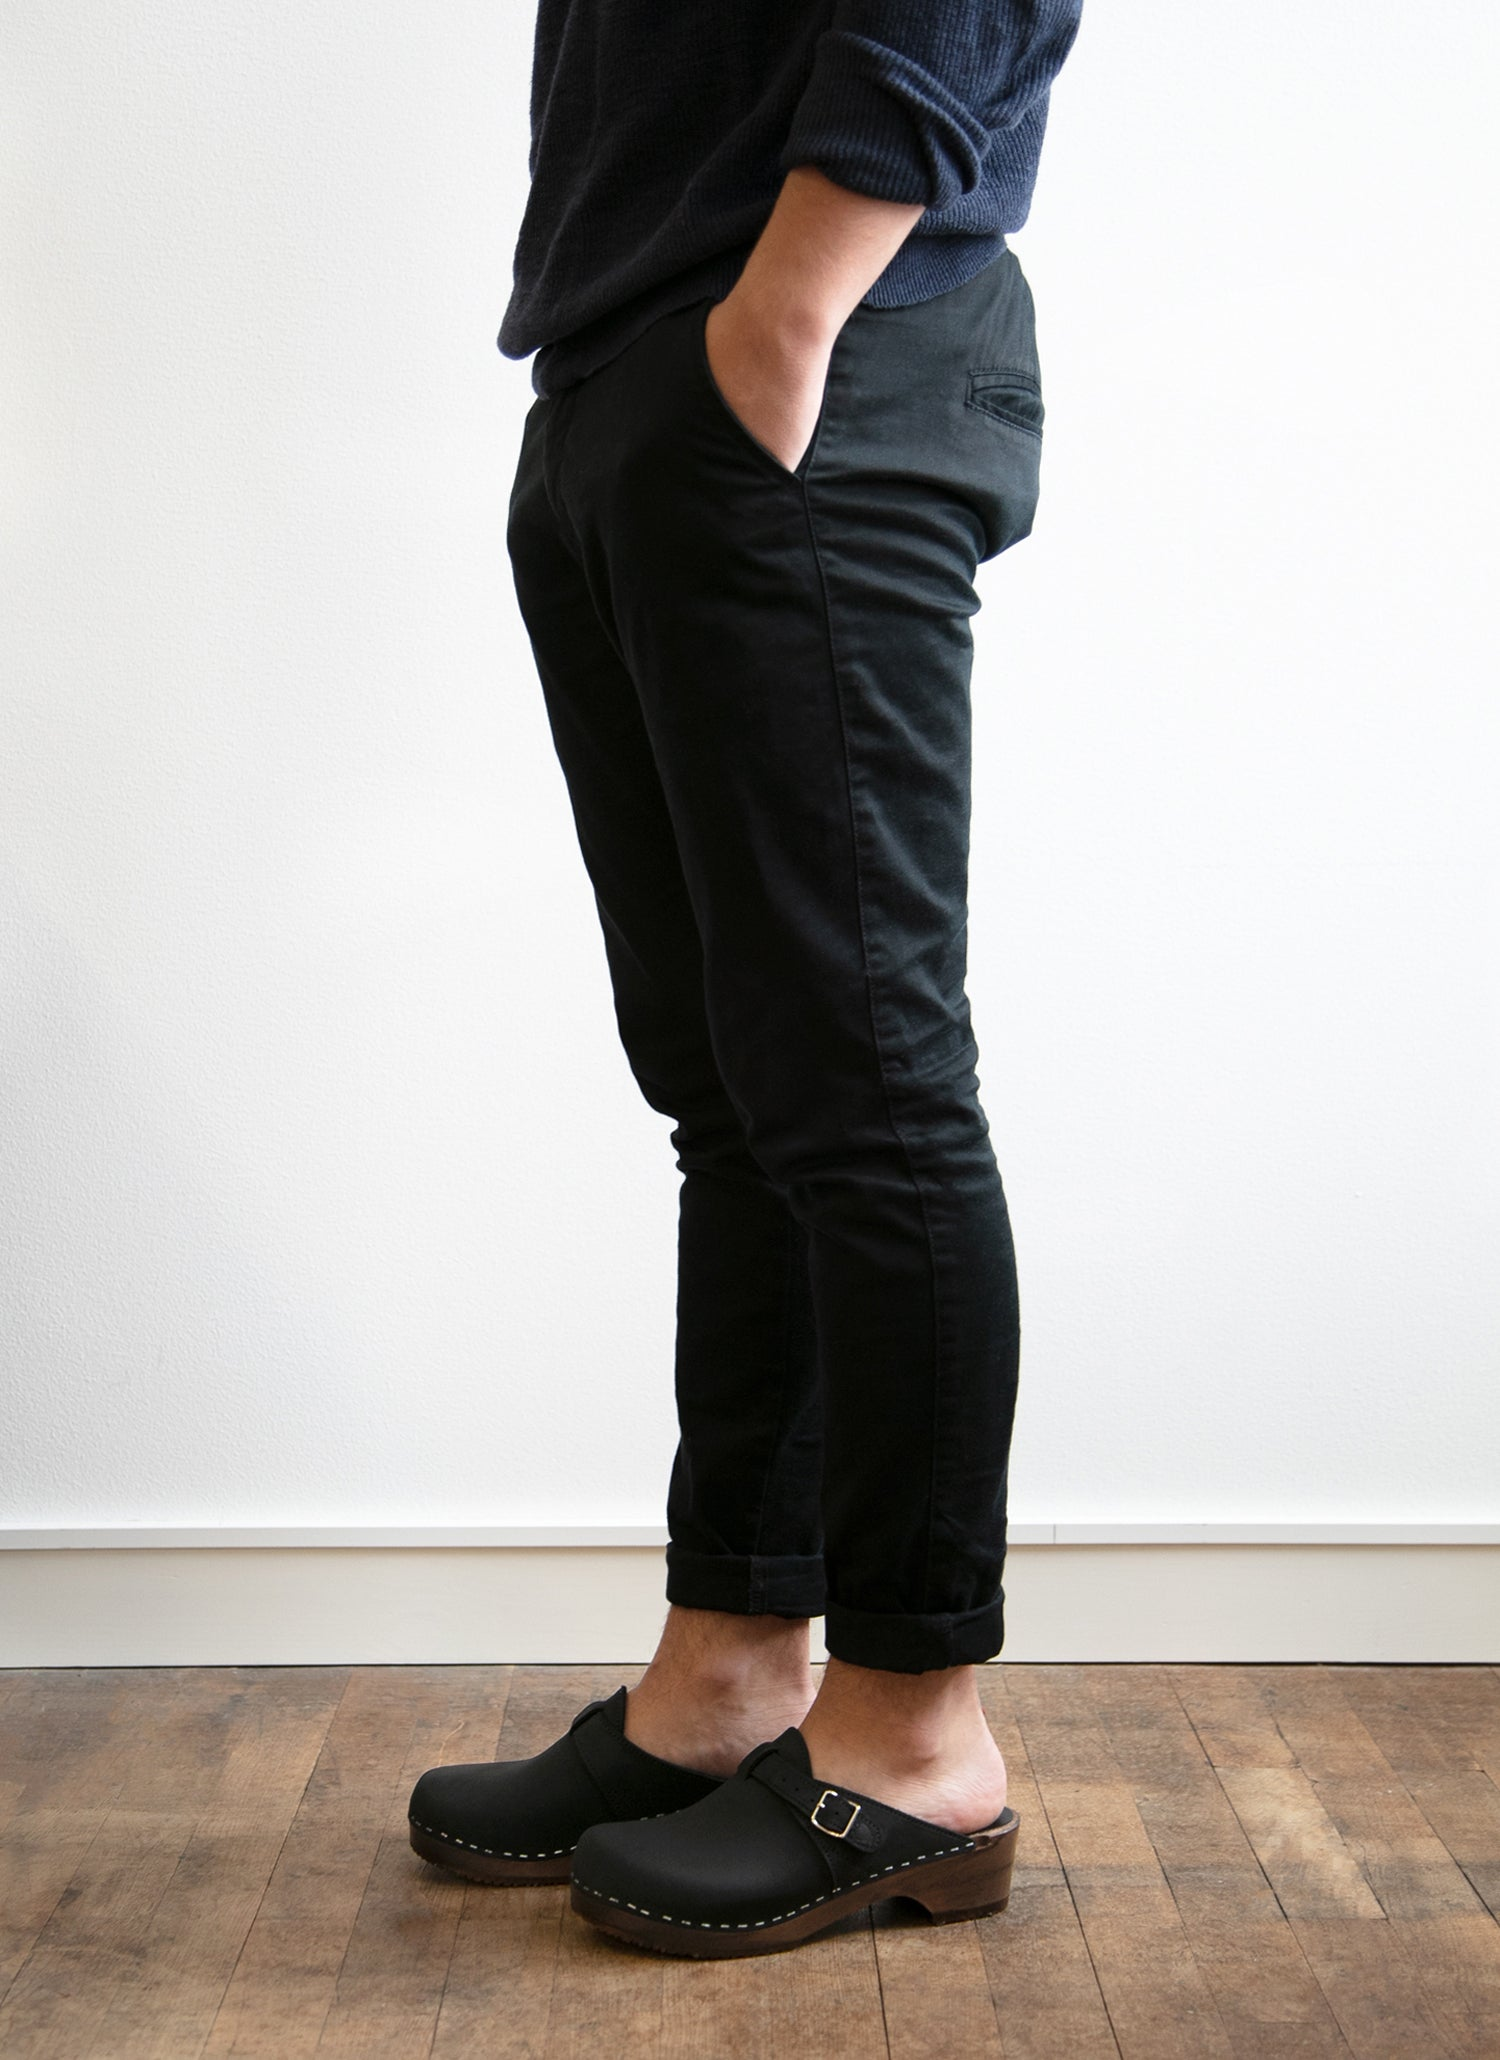 Man wearing black clogs